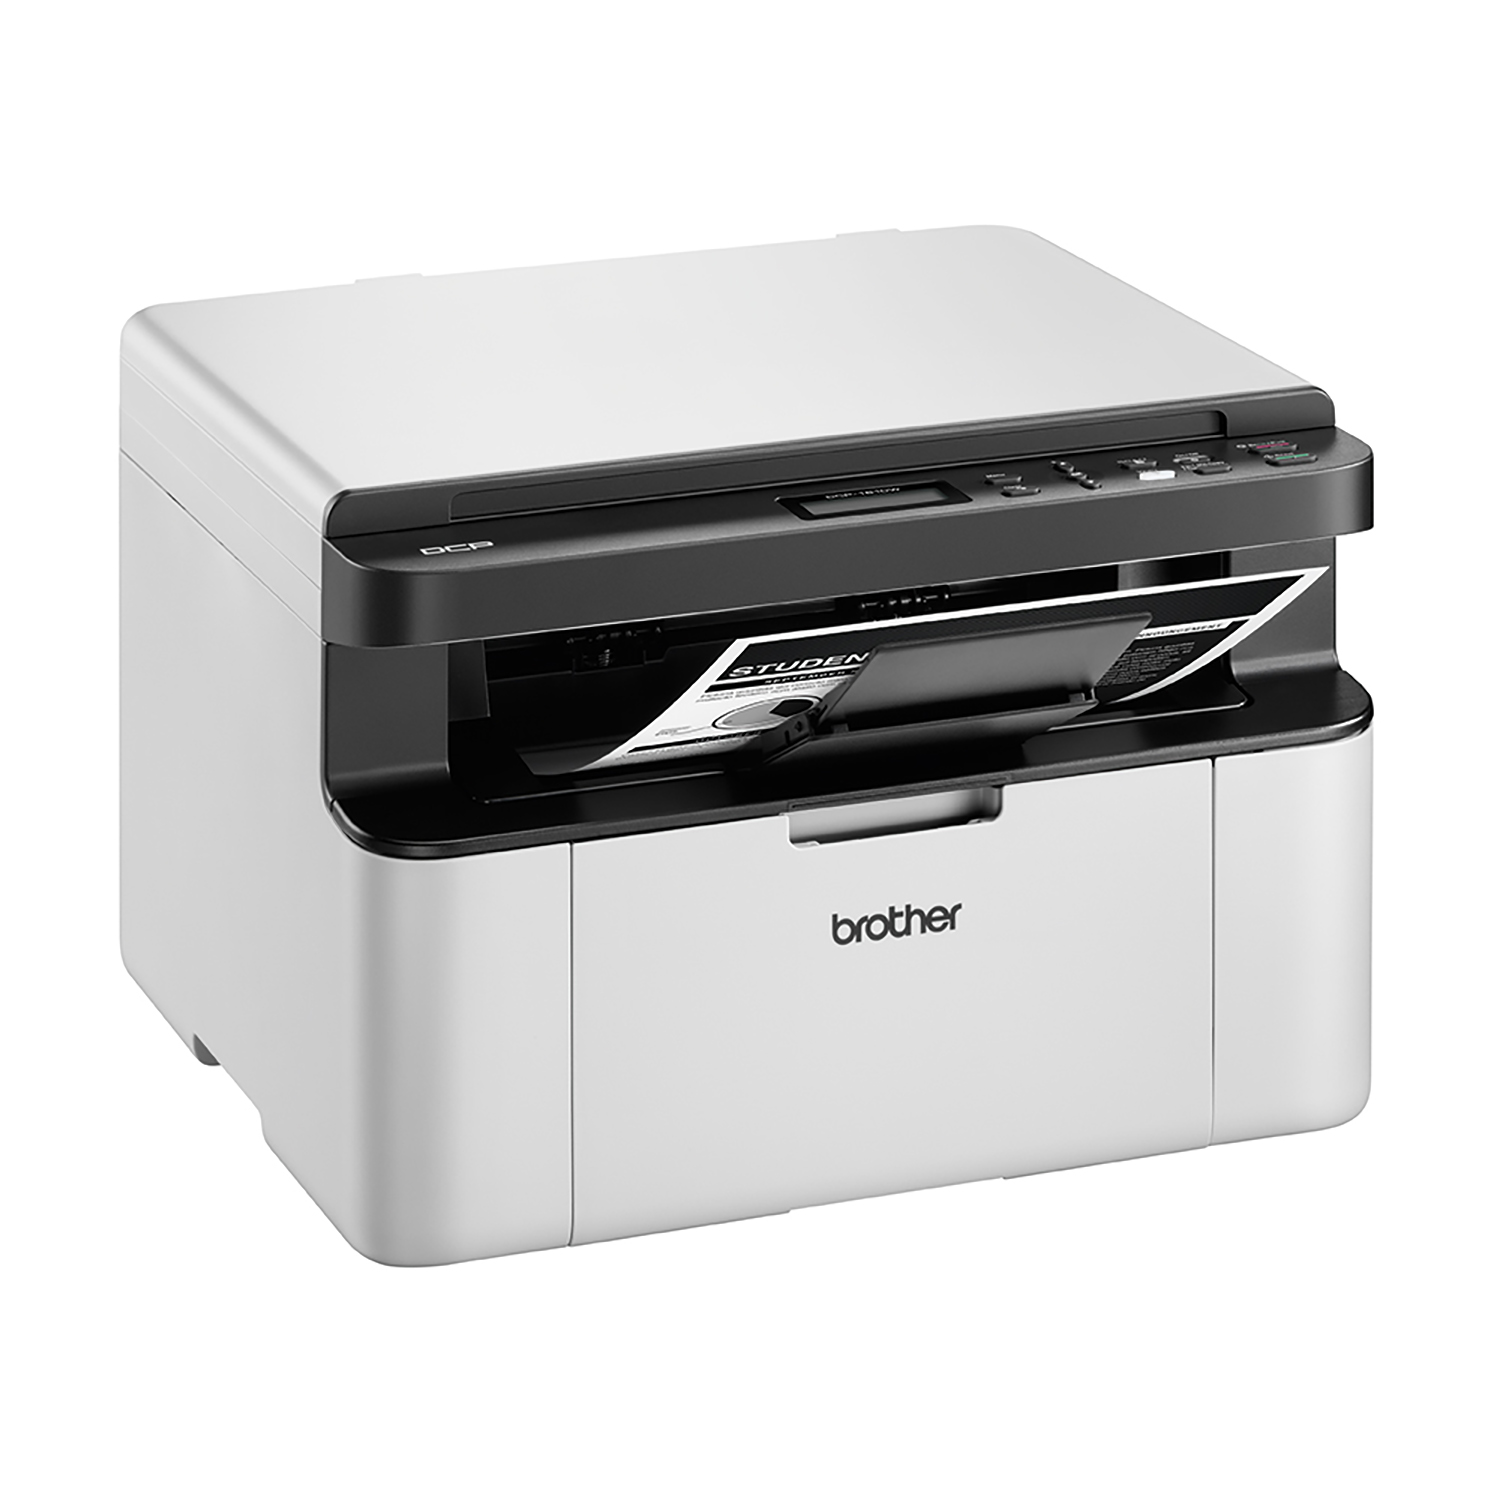 Image for Brother DCP1610W All-in-Box Laser Printer Ref DCP1610WVBZU1